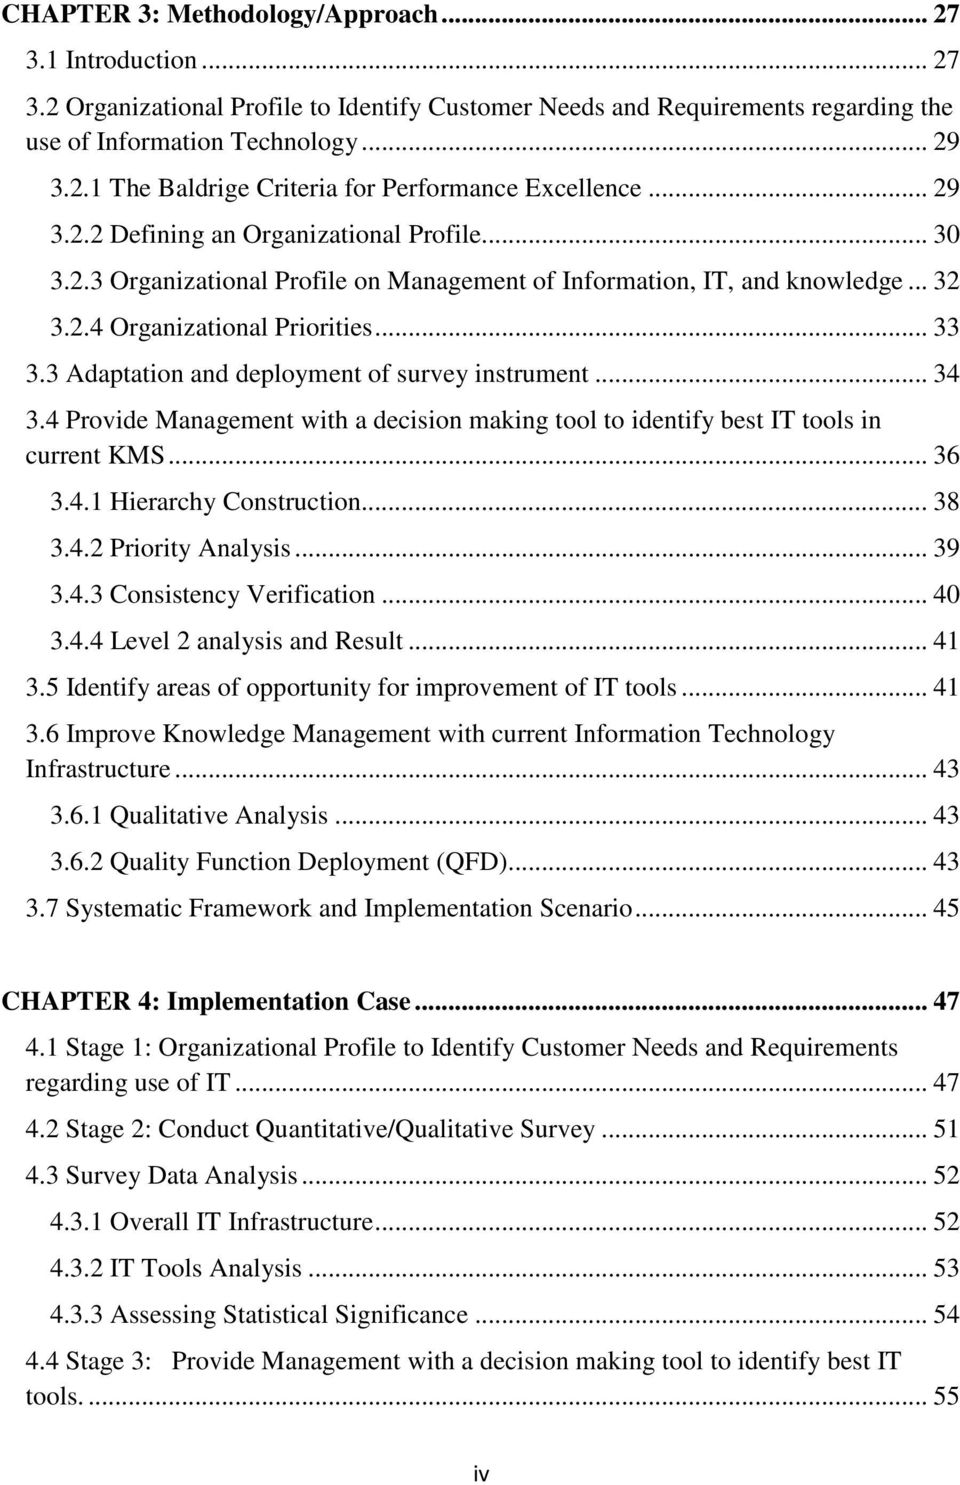 3 Adaptation and deployment of survey instrument... 34 3.4 Provide Management with a decision making tool to identify best IT tools in current KMS... 36 3.4.1 Hierarchy Construction... 38 3.4.2 Priority Analysis.